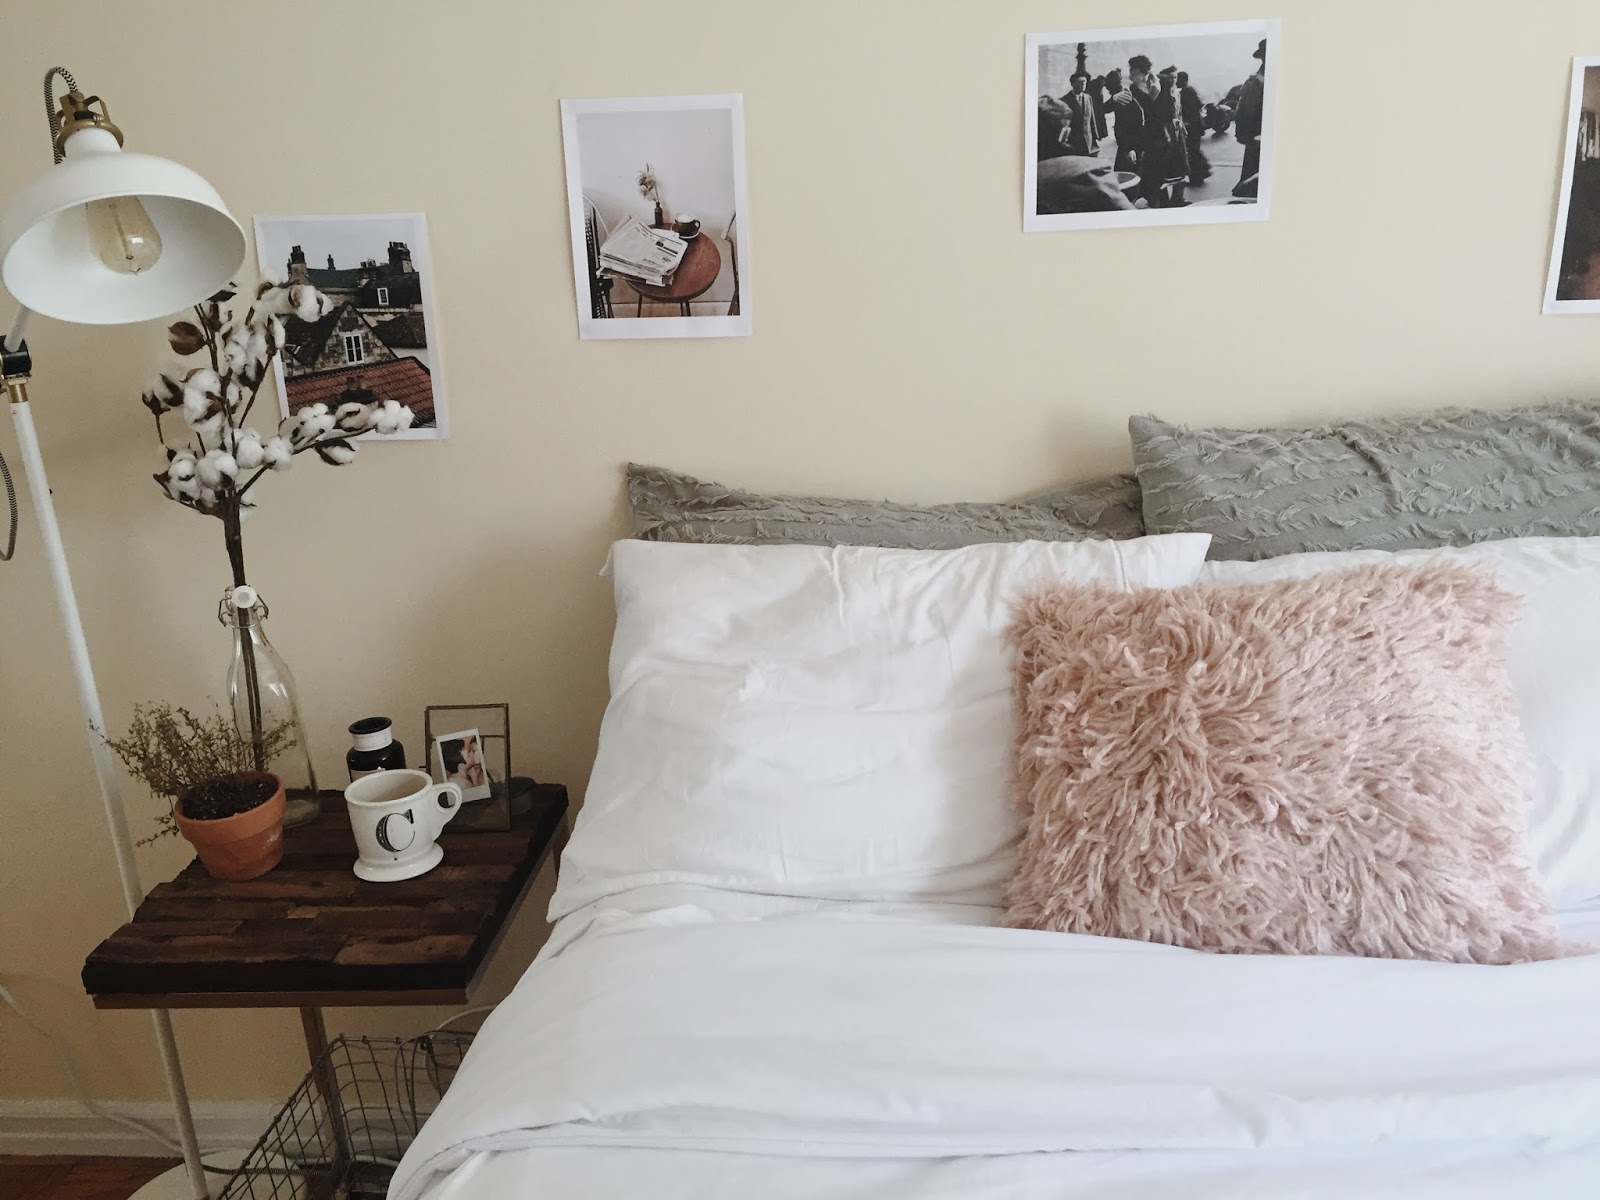 Bedroom Ideas Urban Outfitters A Mini Room Update Ft Urban Outfitters